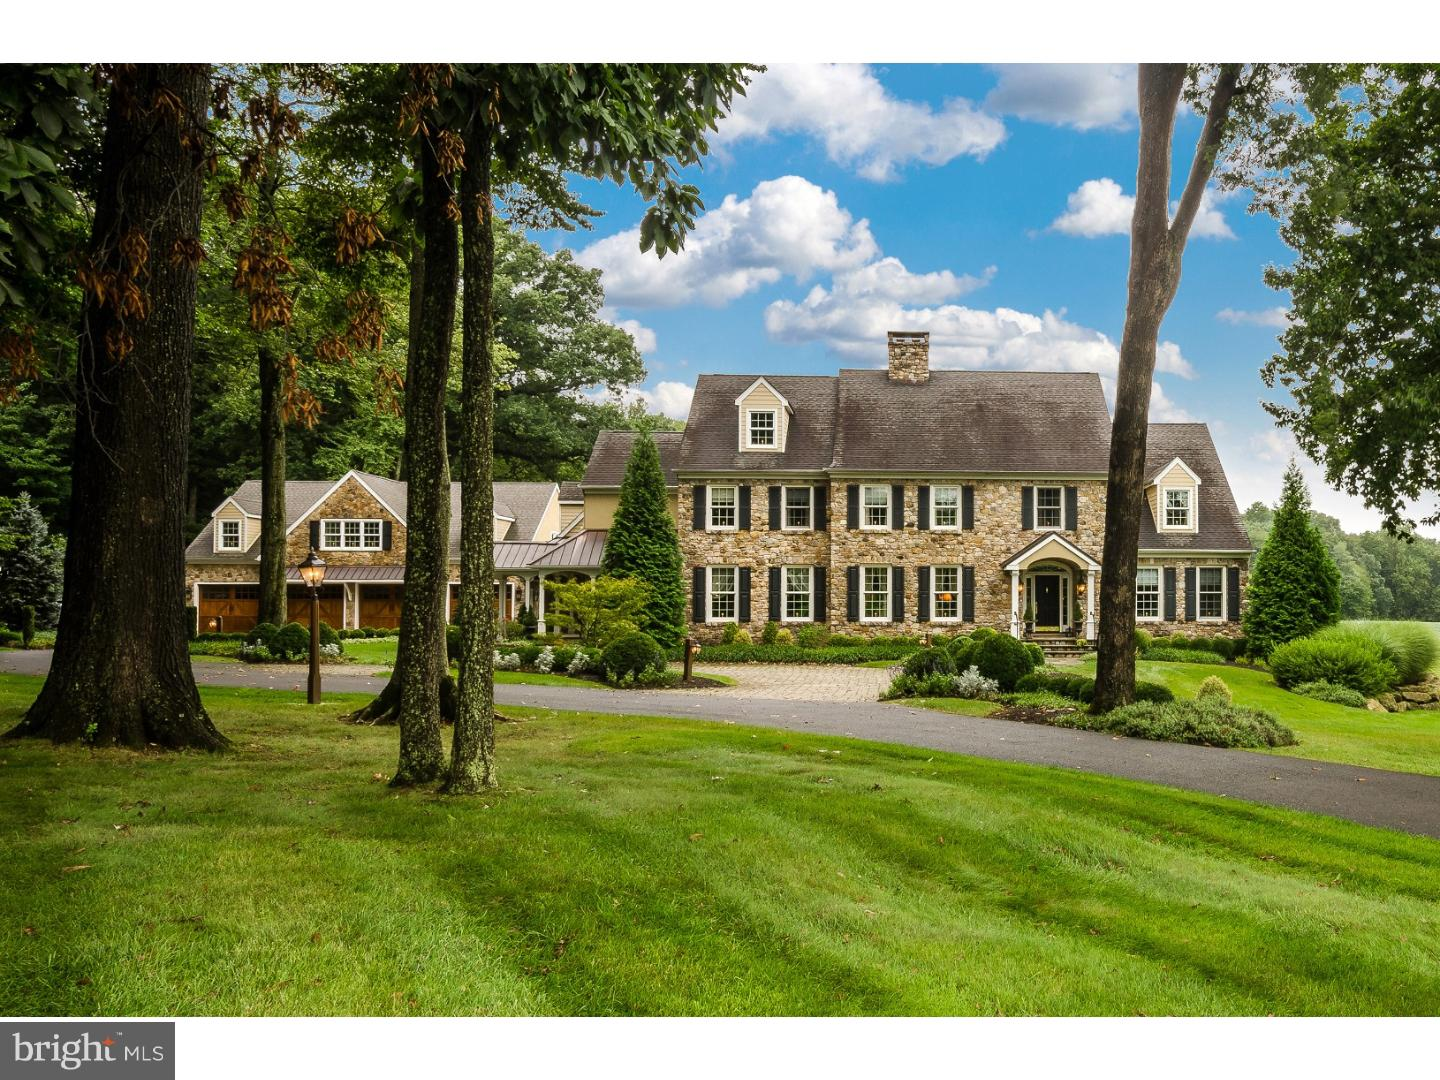 Single Family Home for Sale at 5548 INDIAN RIDGE Road Doylestown, Pennsylvania 18902 United States